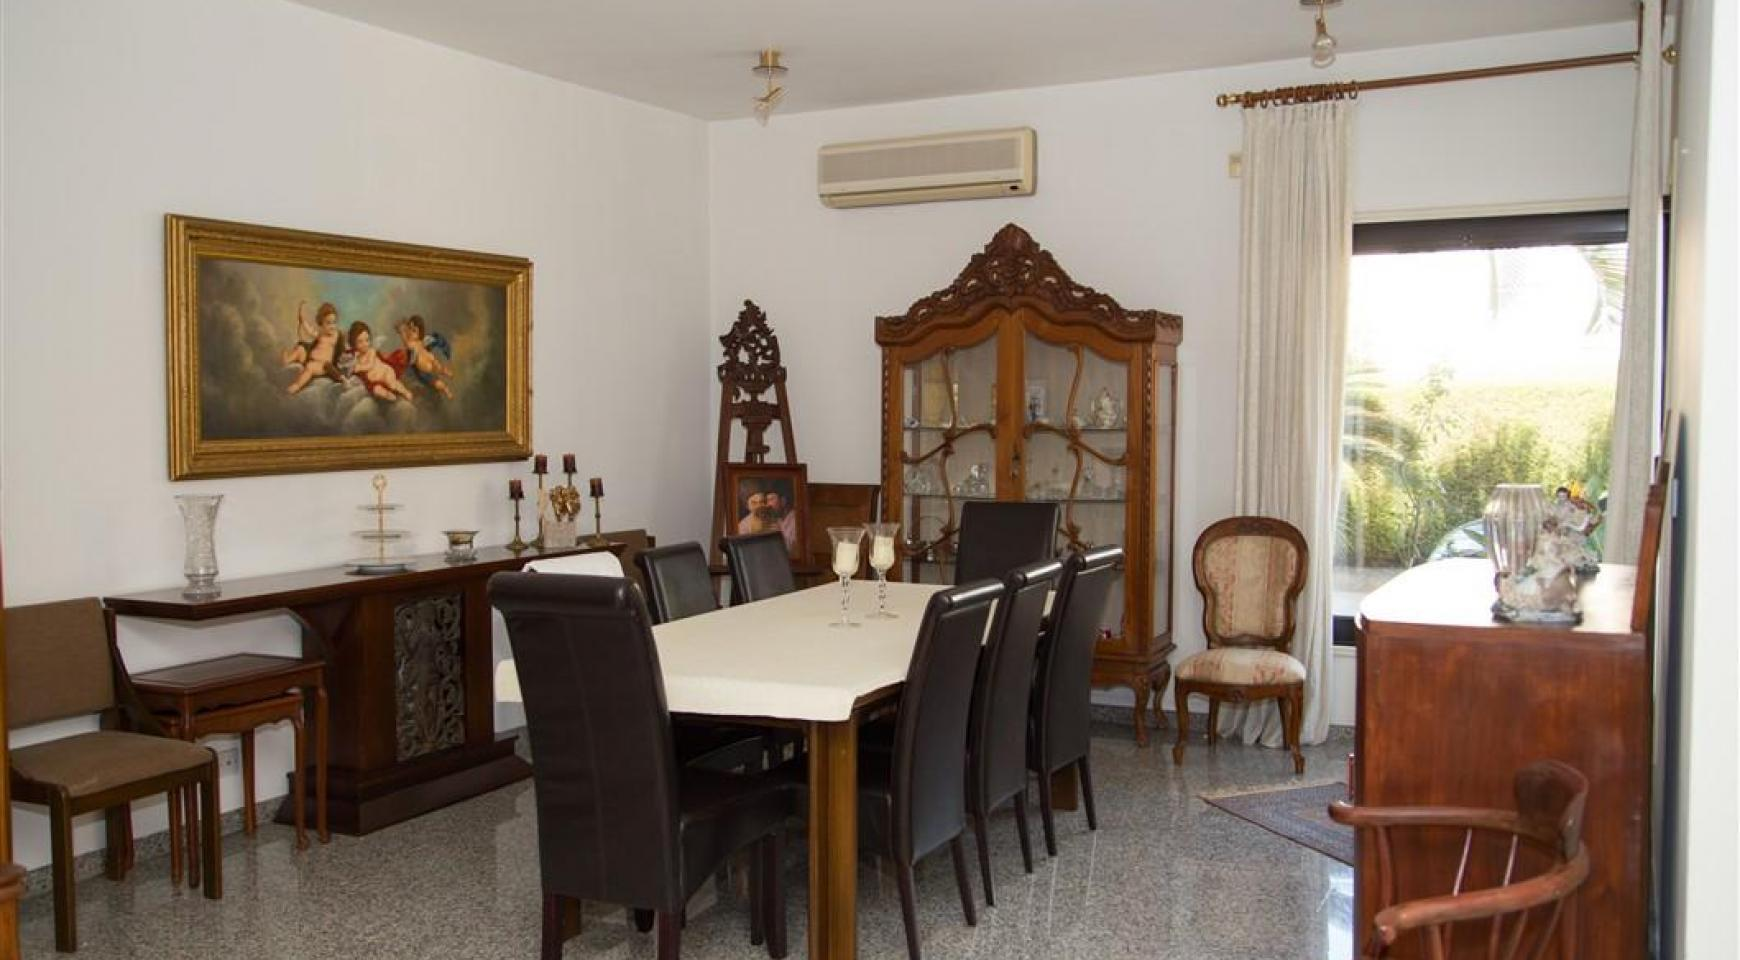 4 Bedroom Villa in Germasogeia Area - 15